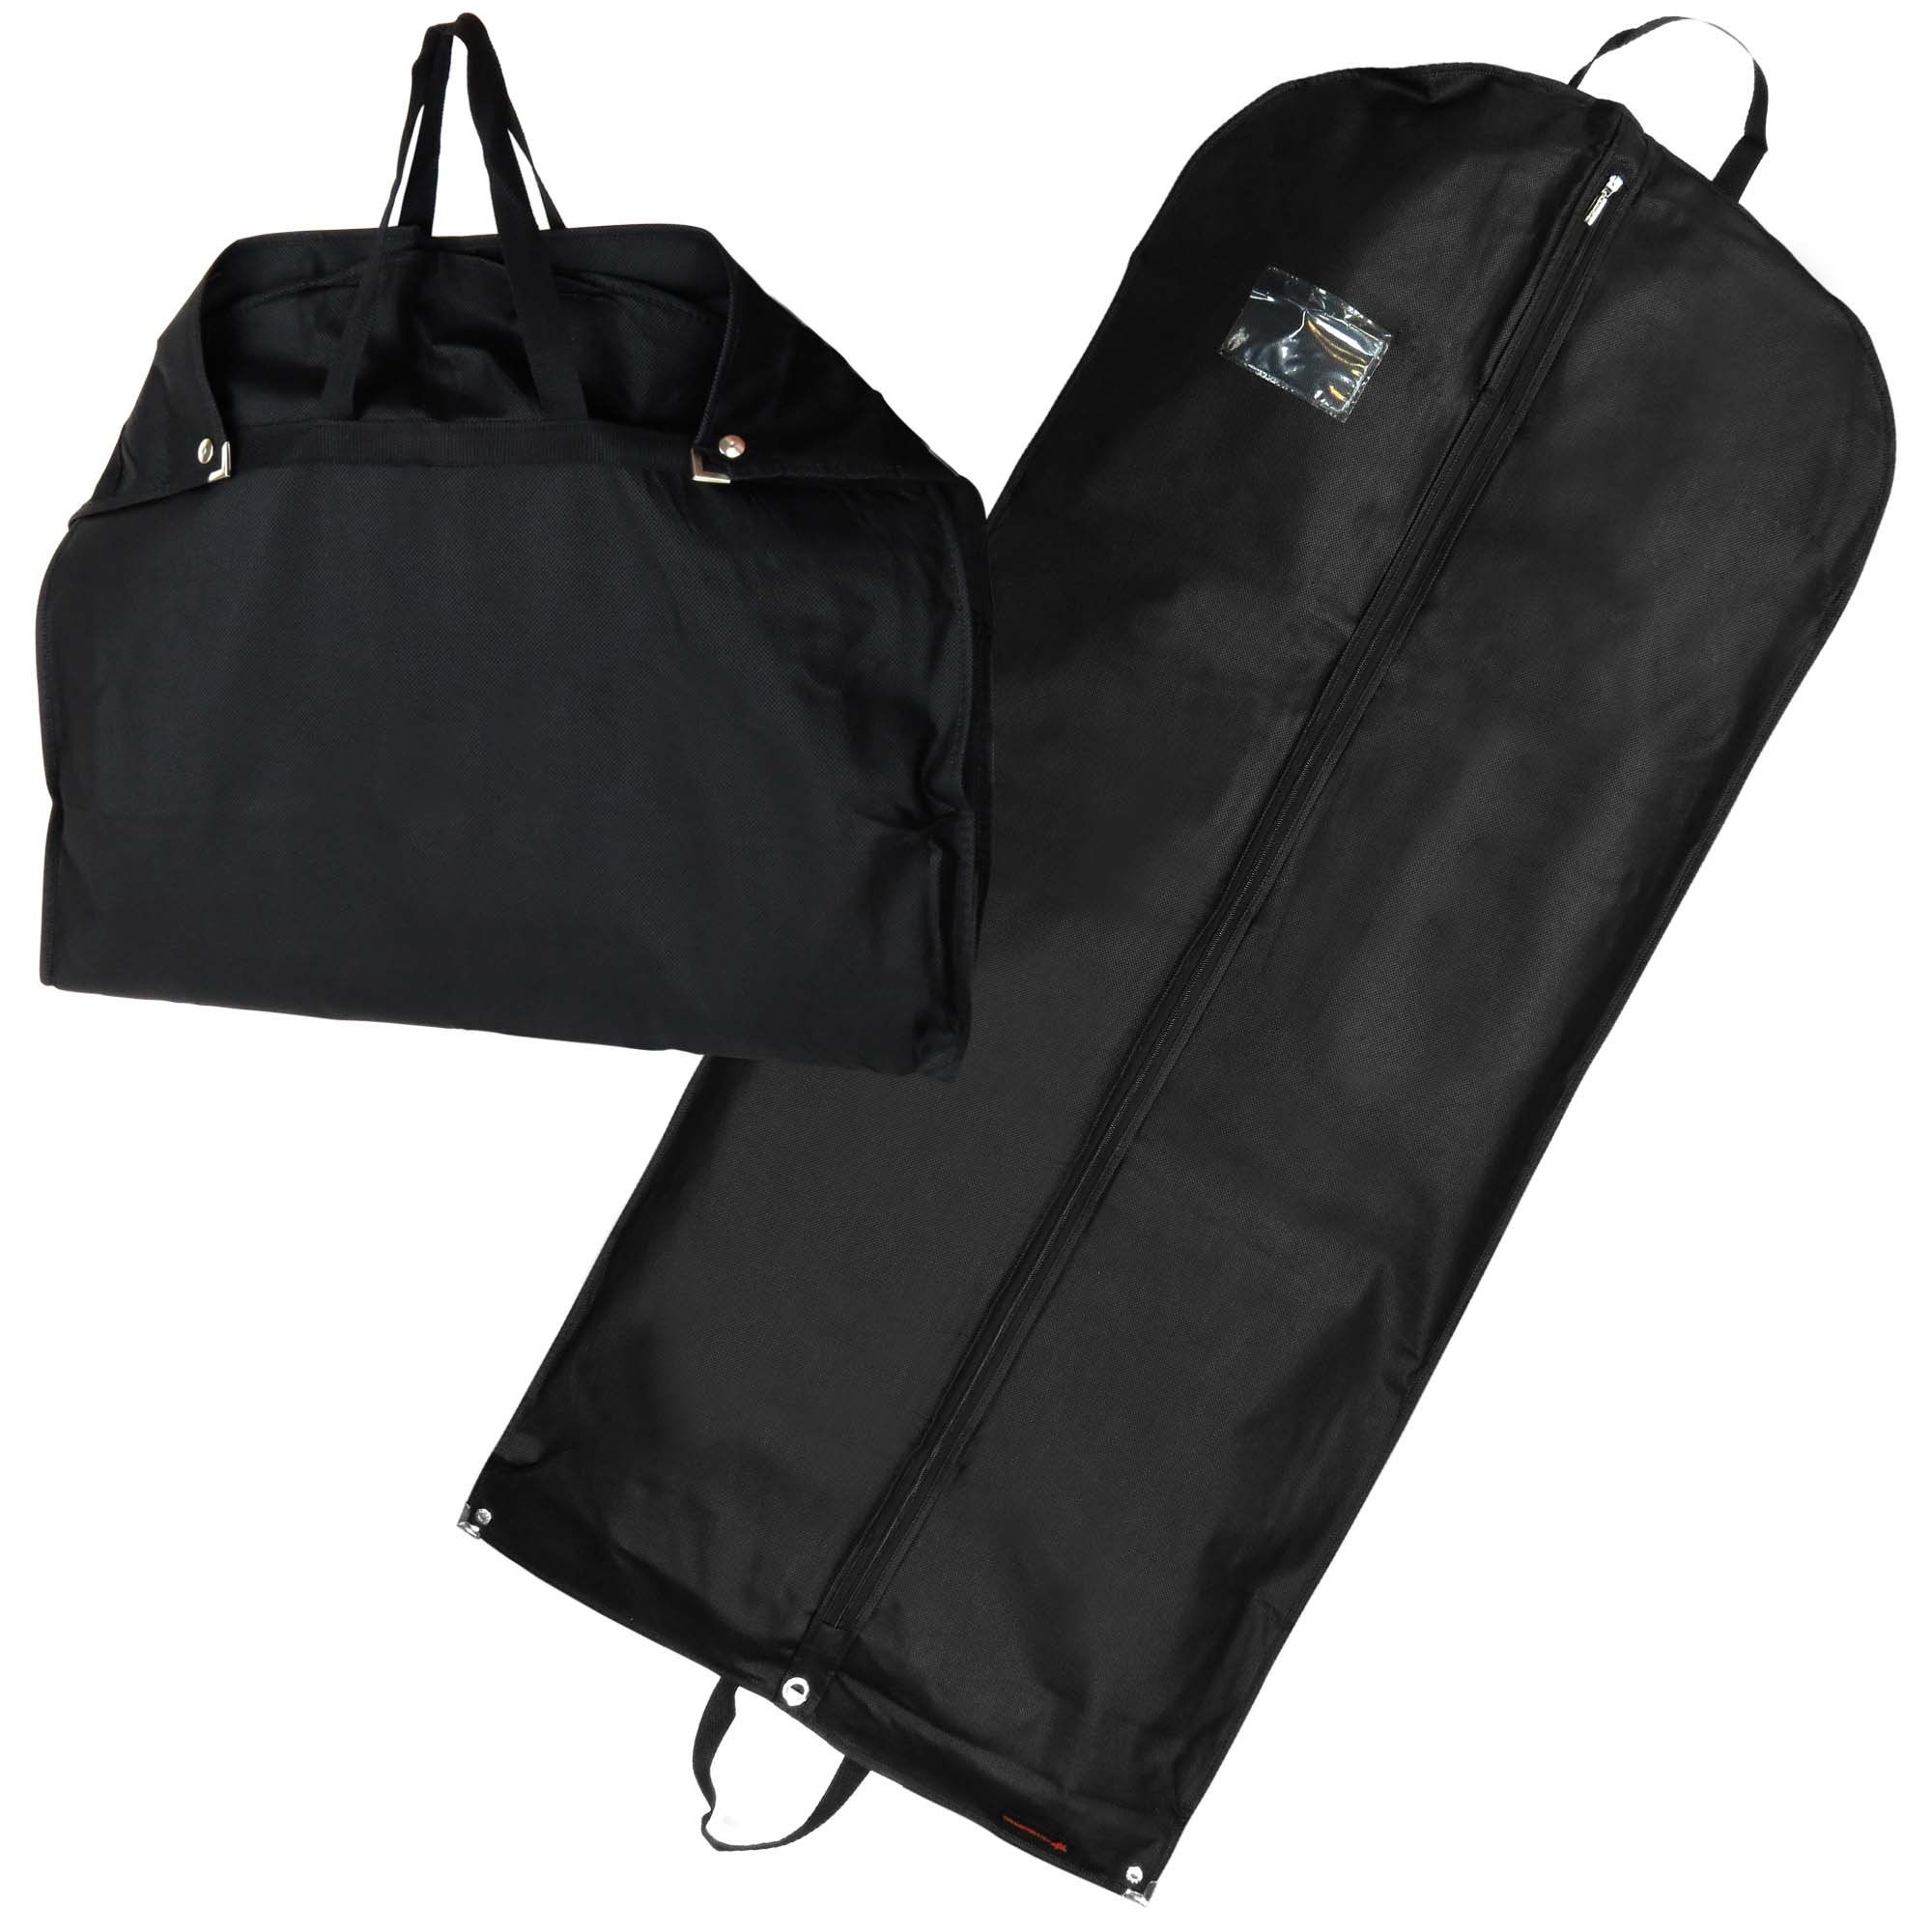 40 IN Garment Bag Travel Accessory Luggage Clothes Foldable Hanging Nylon Black